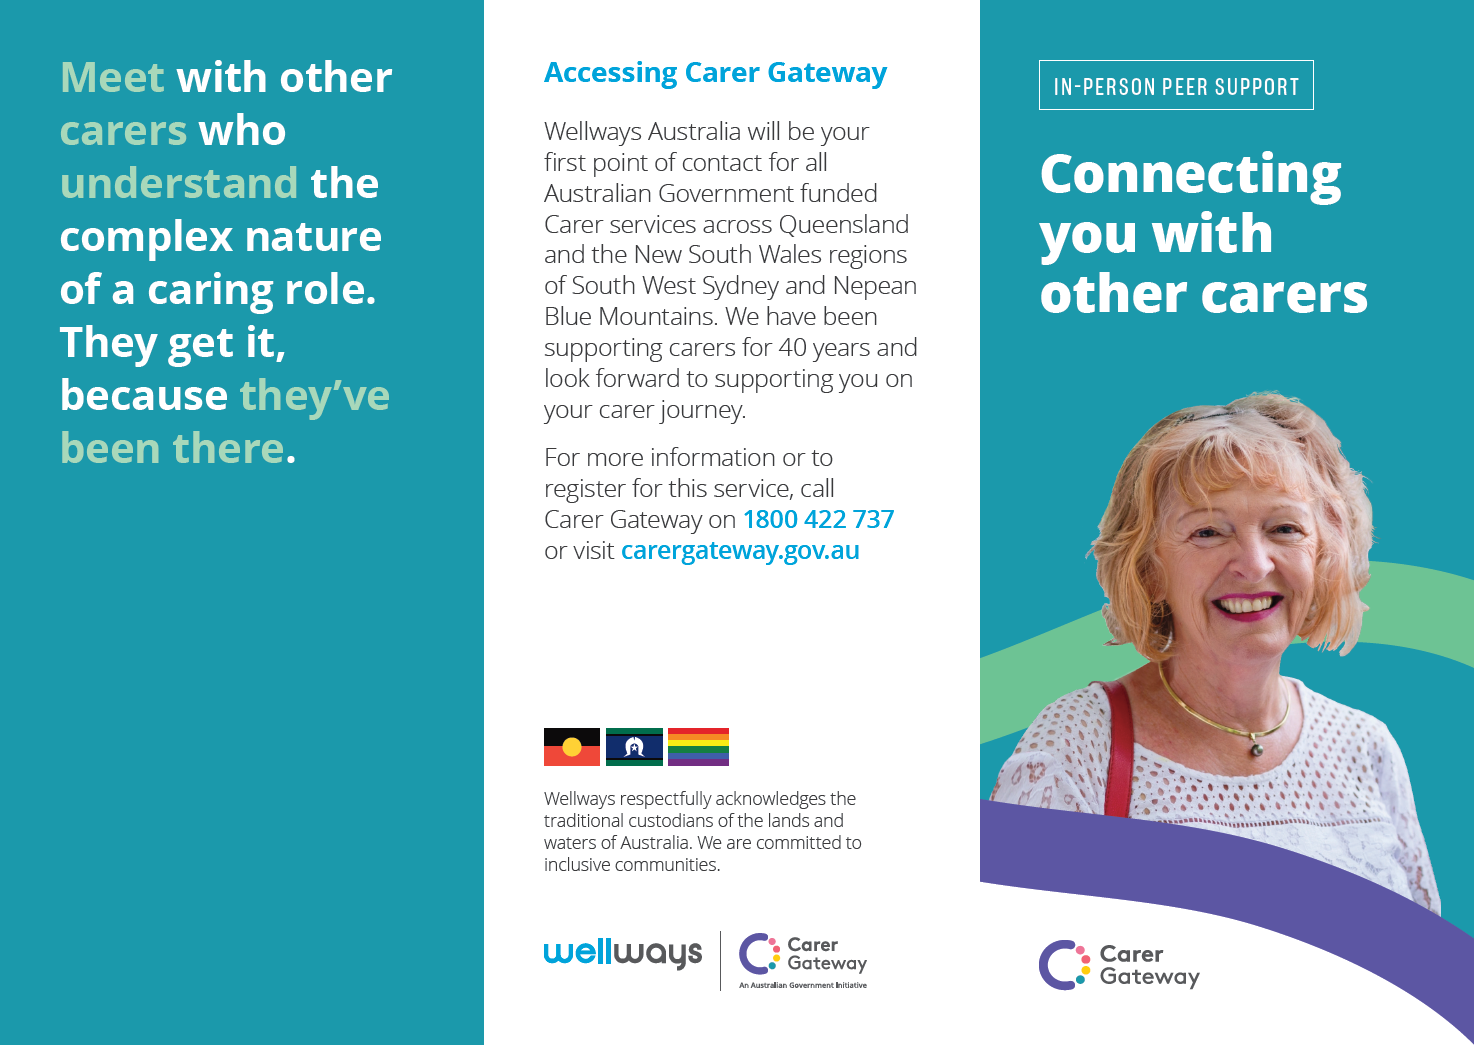 In-Person Peer Support brochure